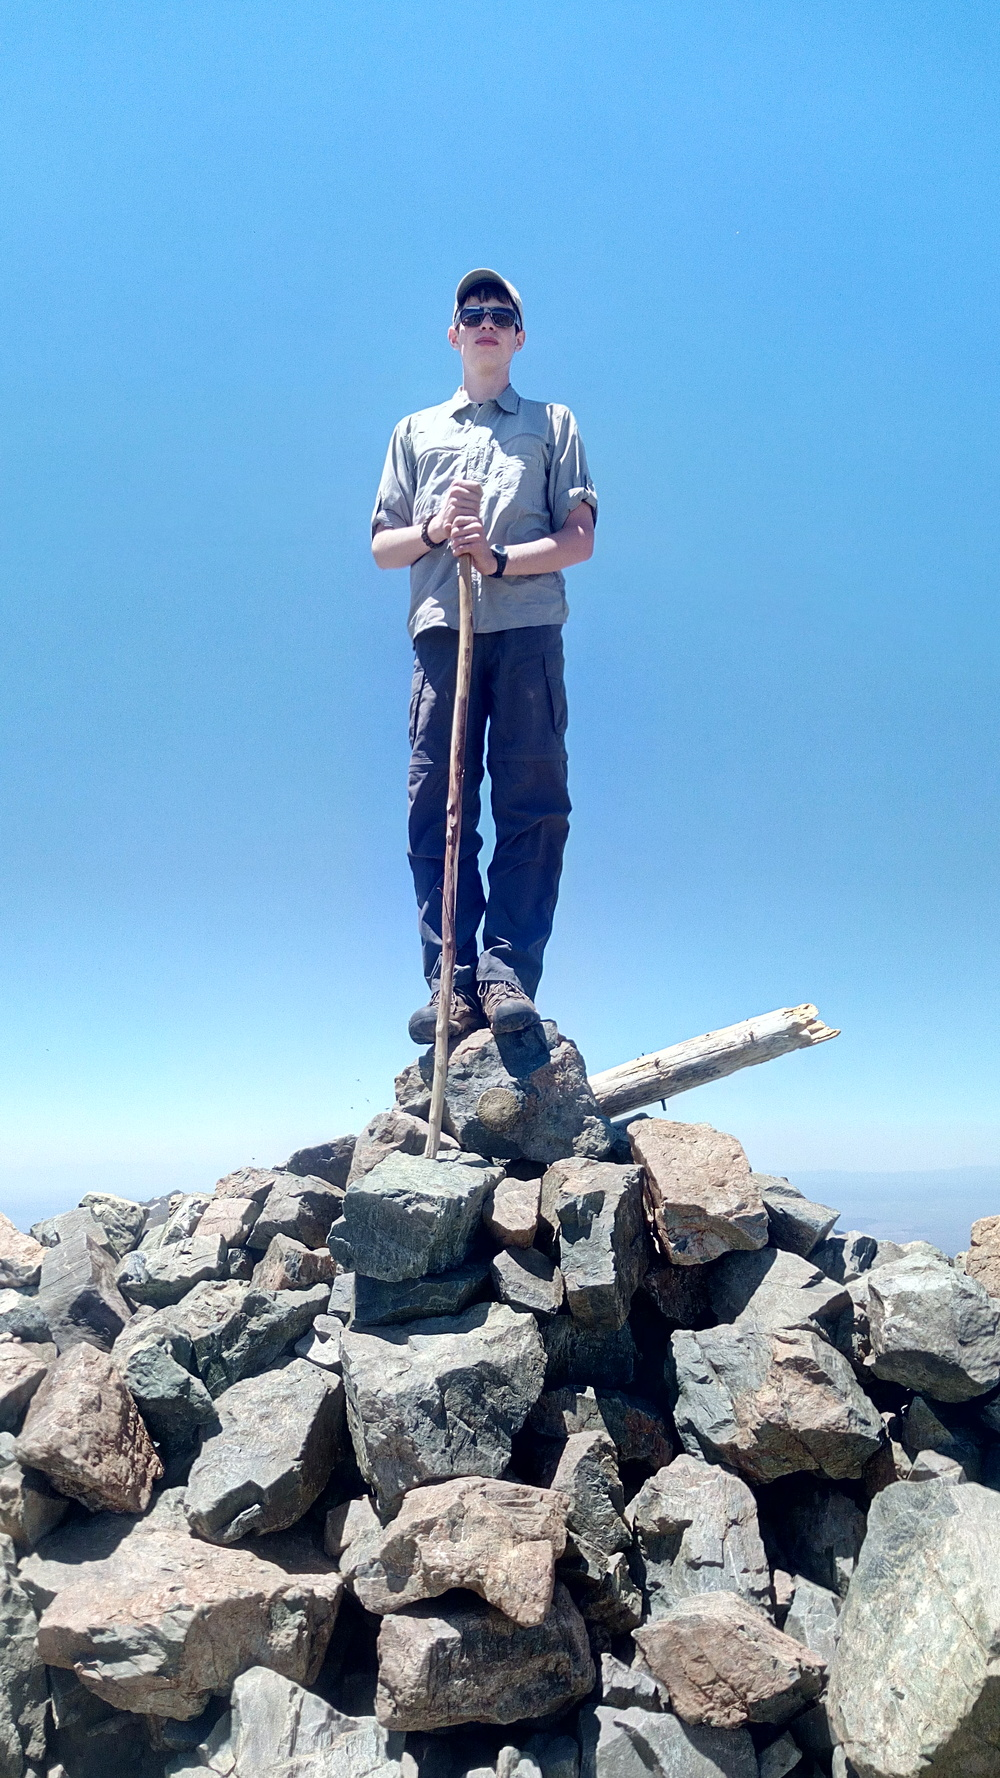 Seeker Ian on the summit of Wheeler Peak.